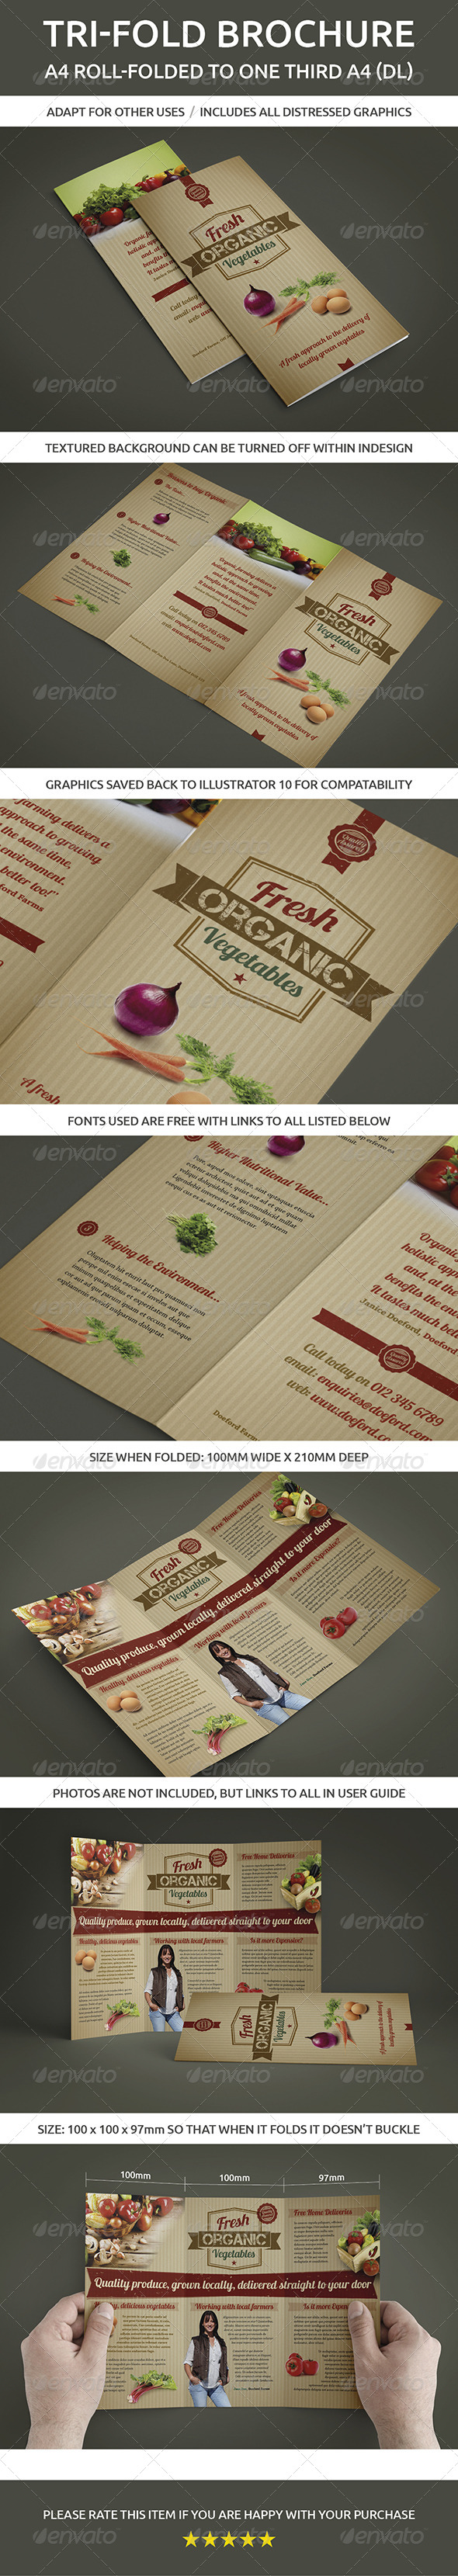 GraphicRiver Tri-fold brochure A4 roll-folded to one third A4 5984639